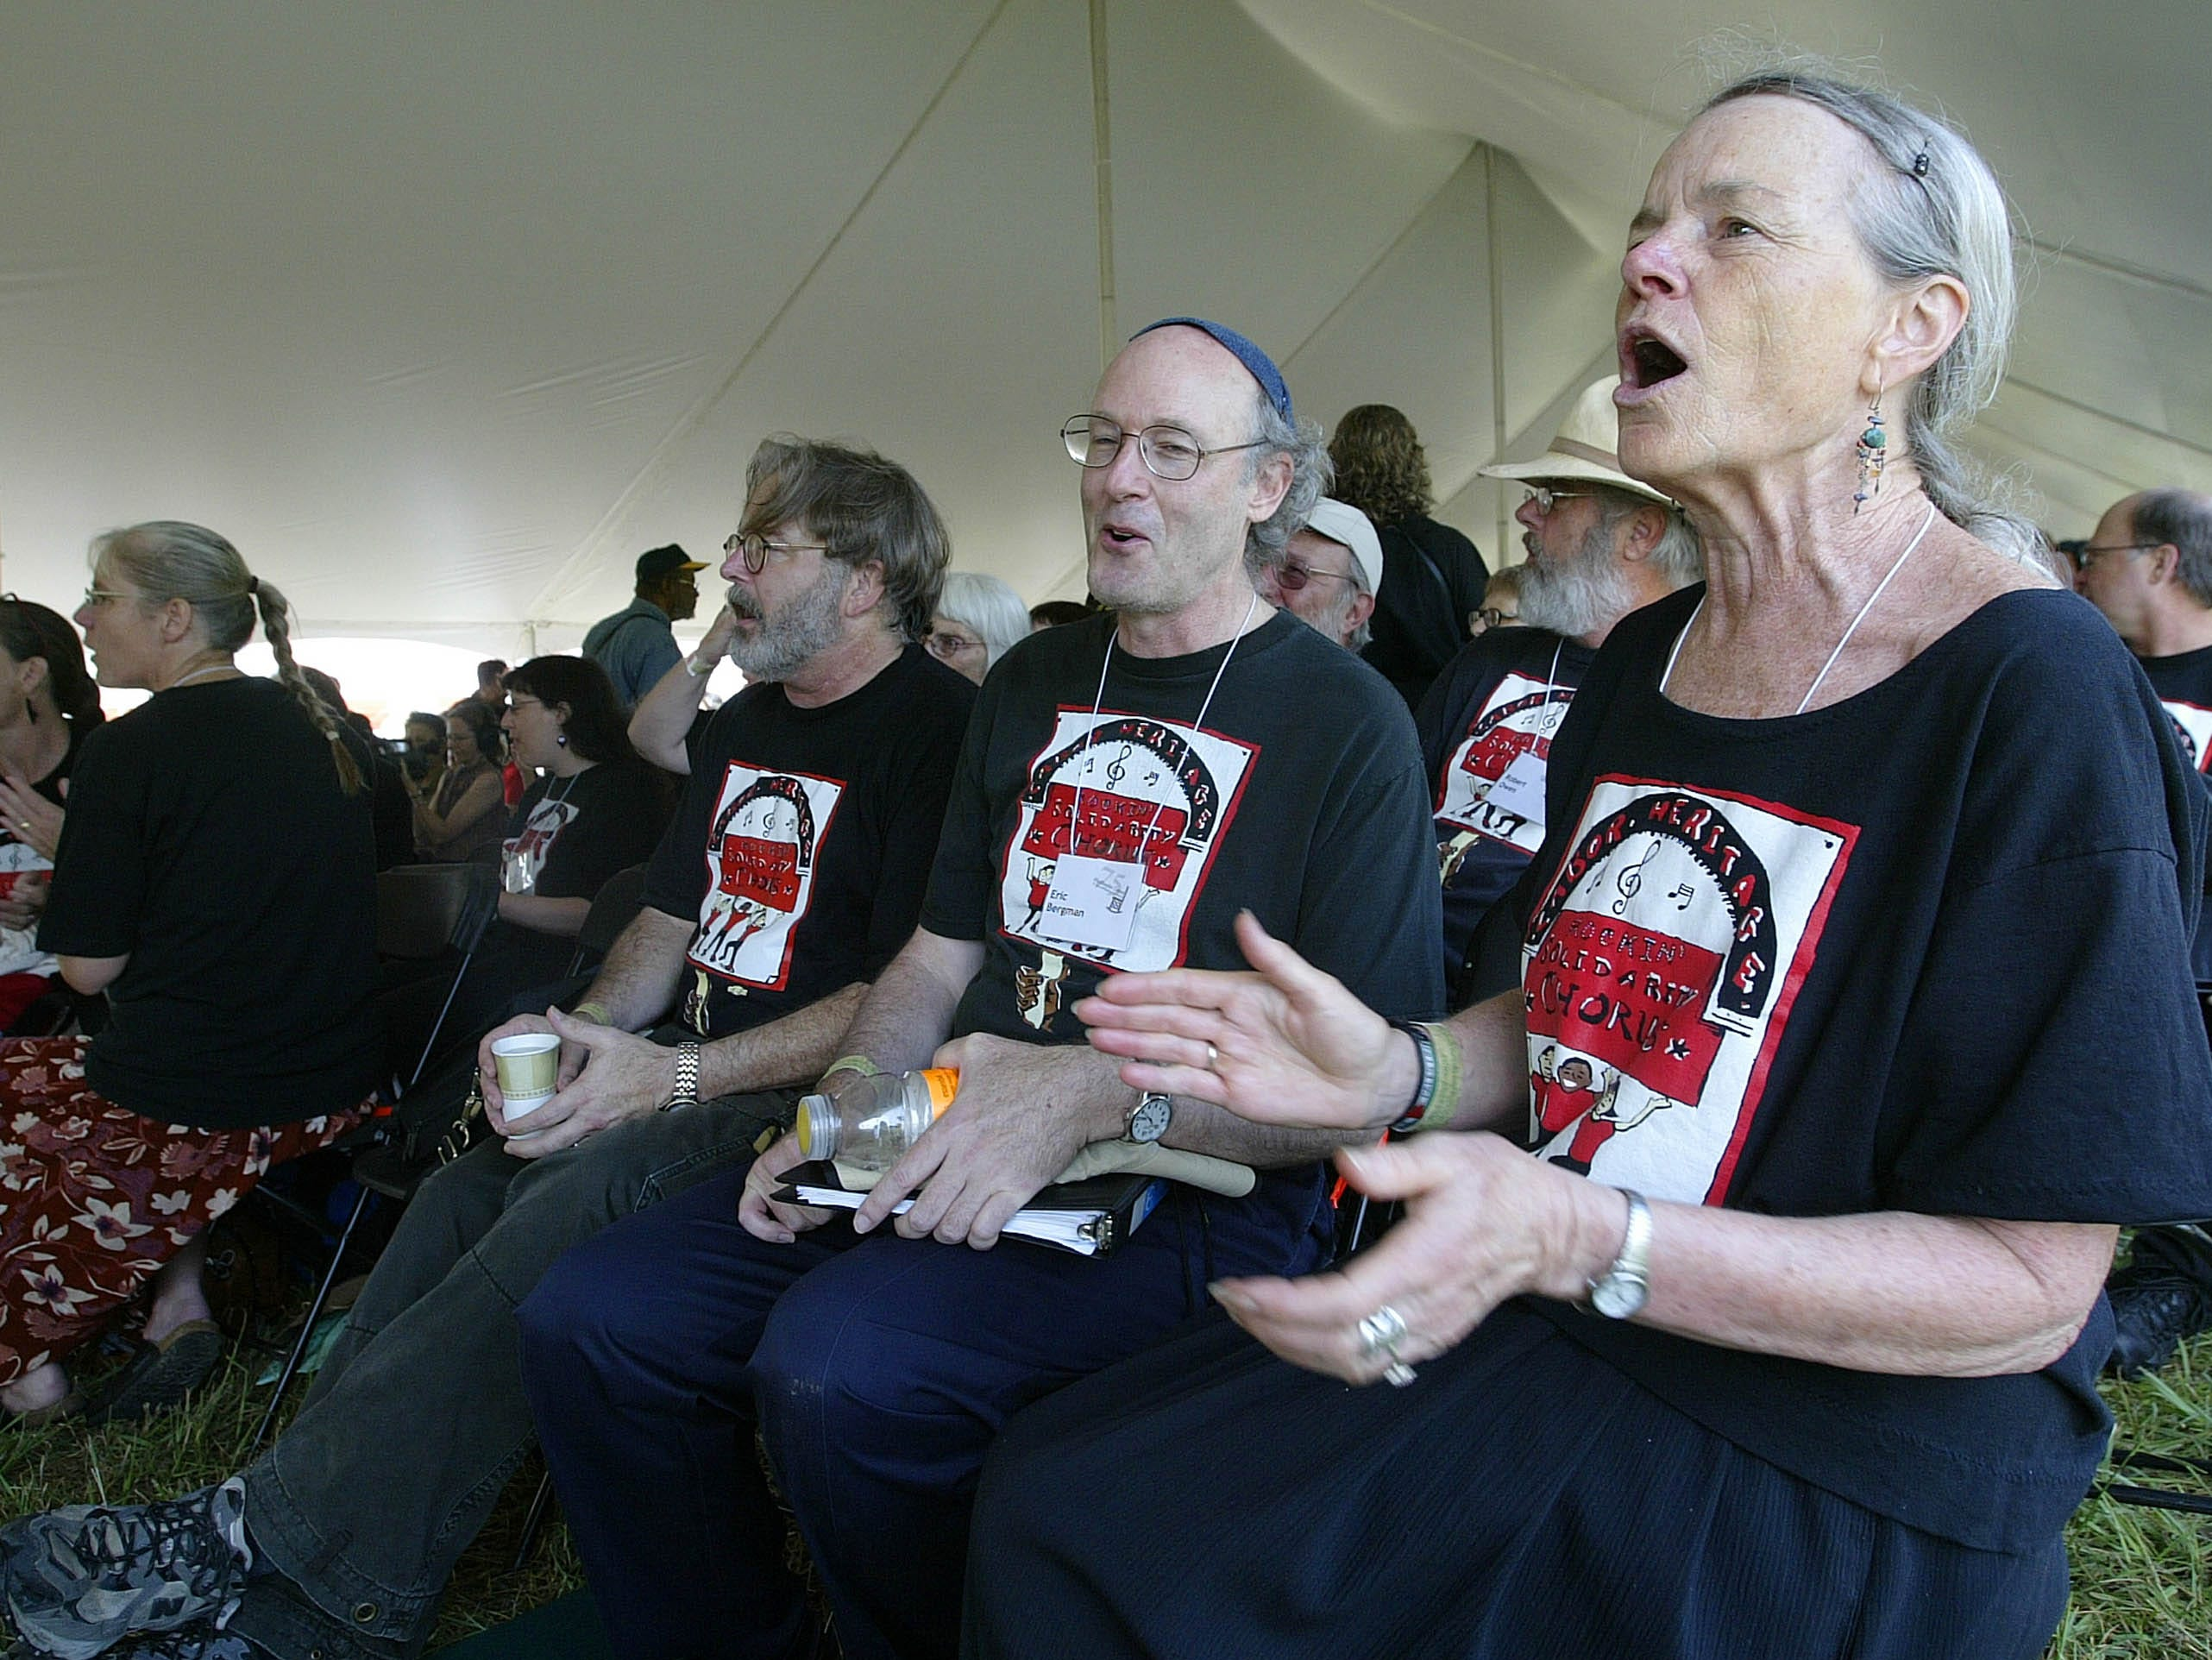 Mary Izett, right, Eric Bergman, center, and Doug Norman of Lafayette, Calif., sing during a gathering to mark the 75th Anniversary of the Highlander Research and Education Center Saturday, Sept. 1, 2007, in New Market, Tenn. The little school tucked away in the east Tennessee mountains may have faded from the public spotlight, but it was once at the center of the struggle for civil rights.